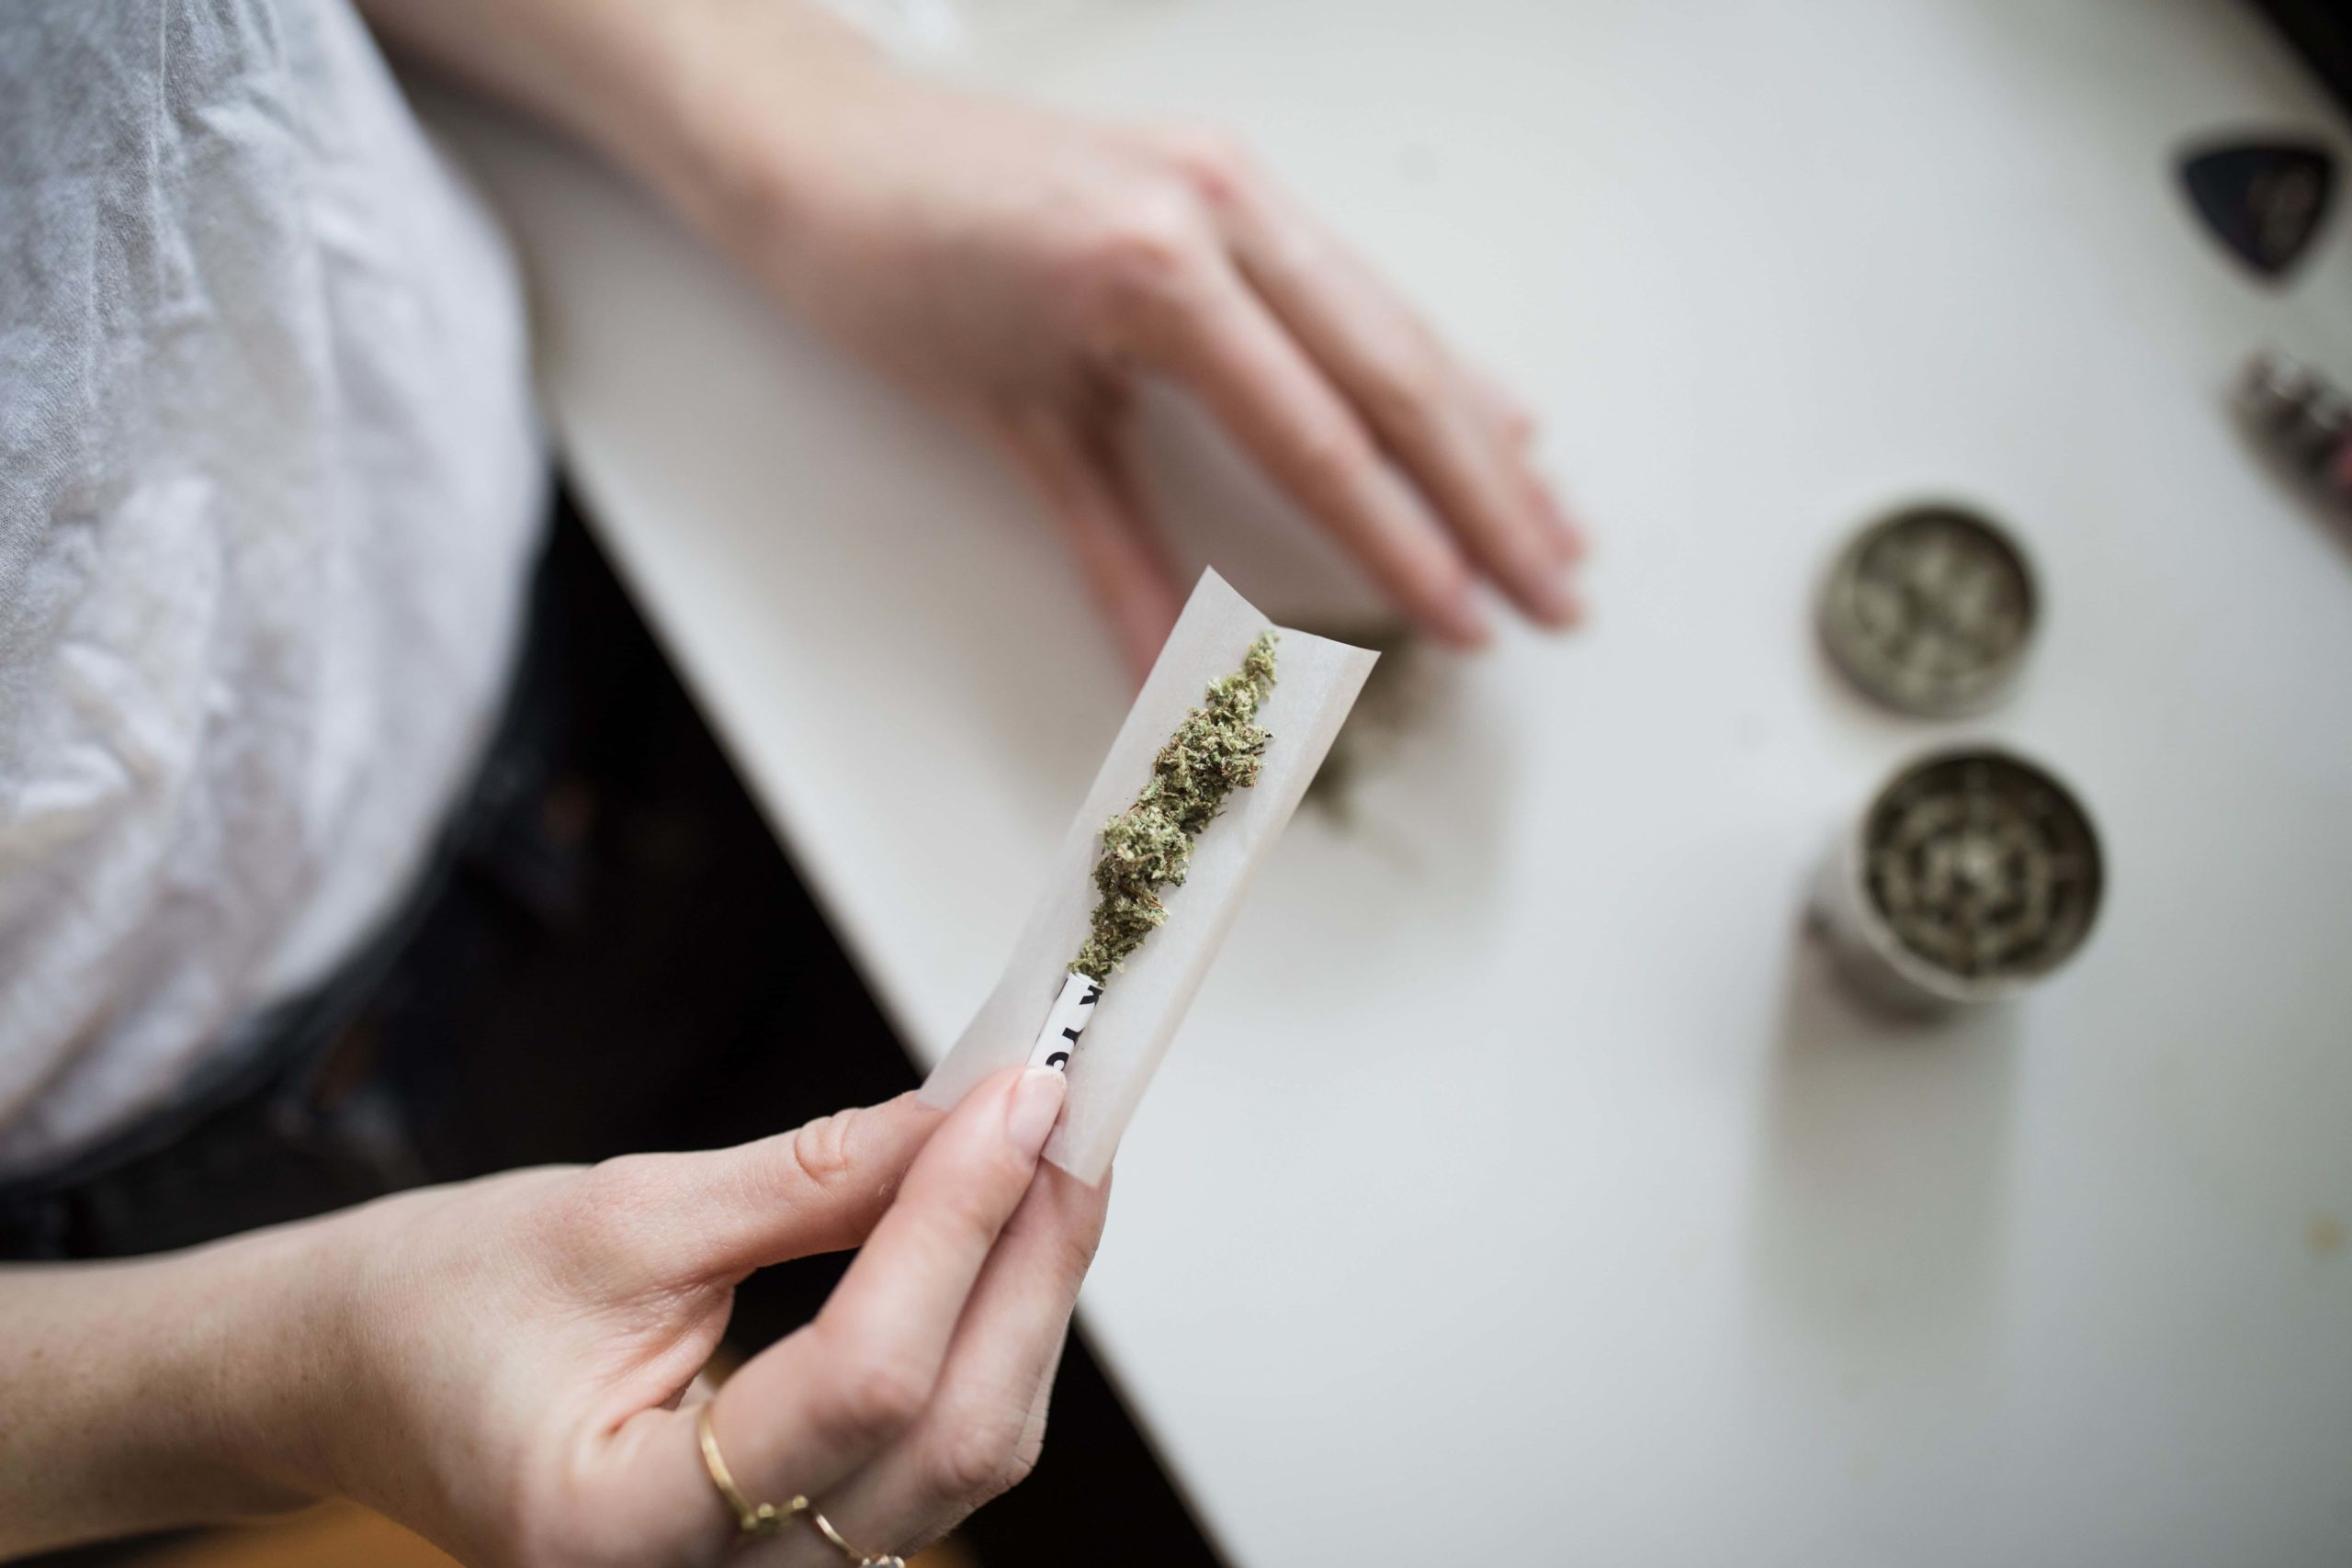 Oregon Marijuana Sales Spike Could Continue As Consumers 'Permanently Adjust Their Behavior' Following COVID